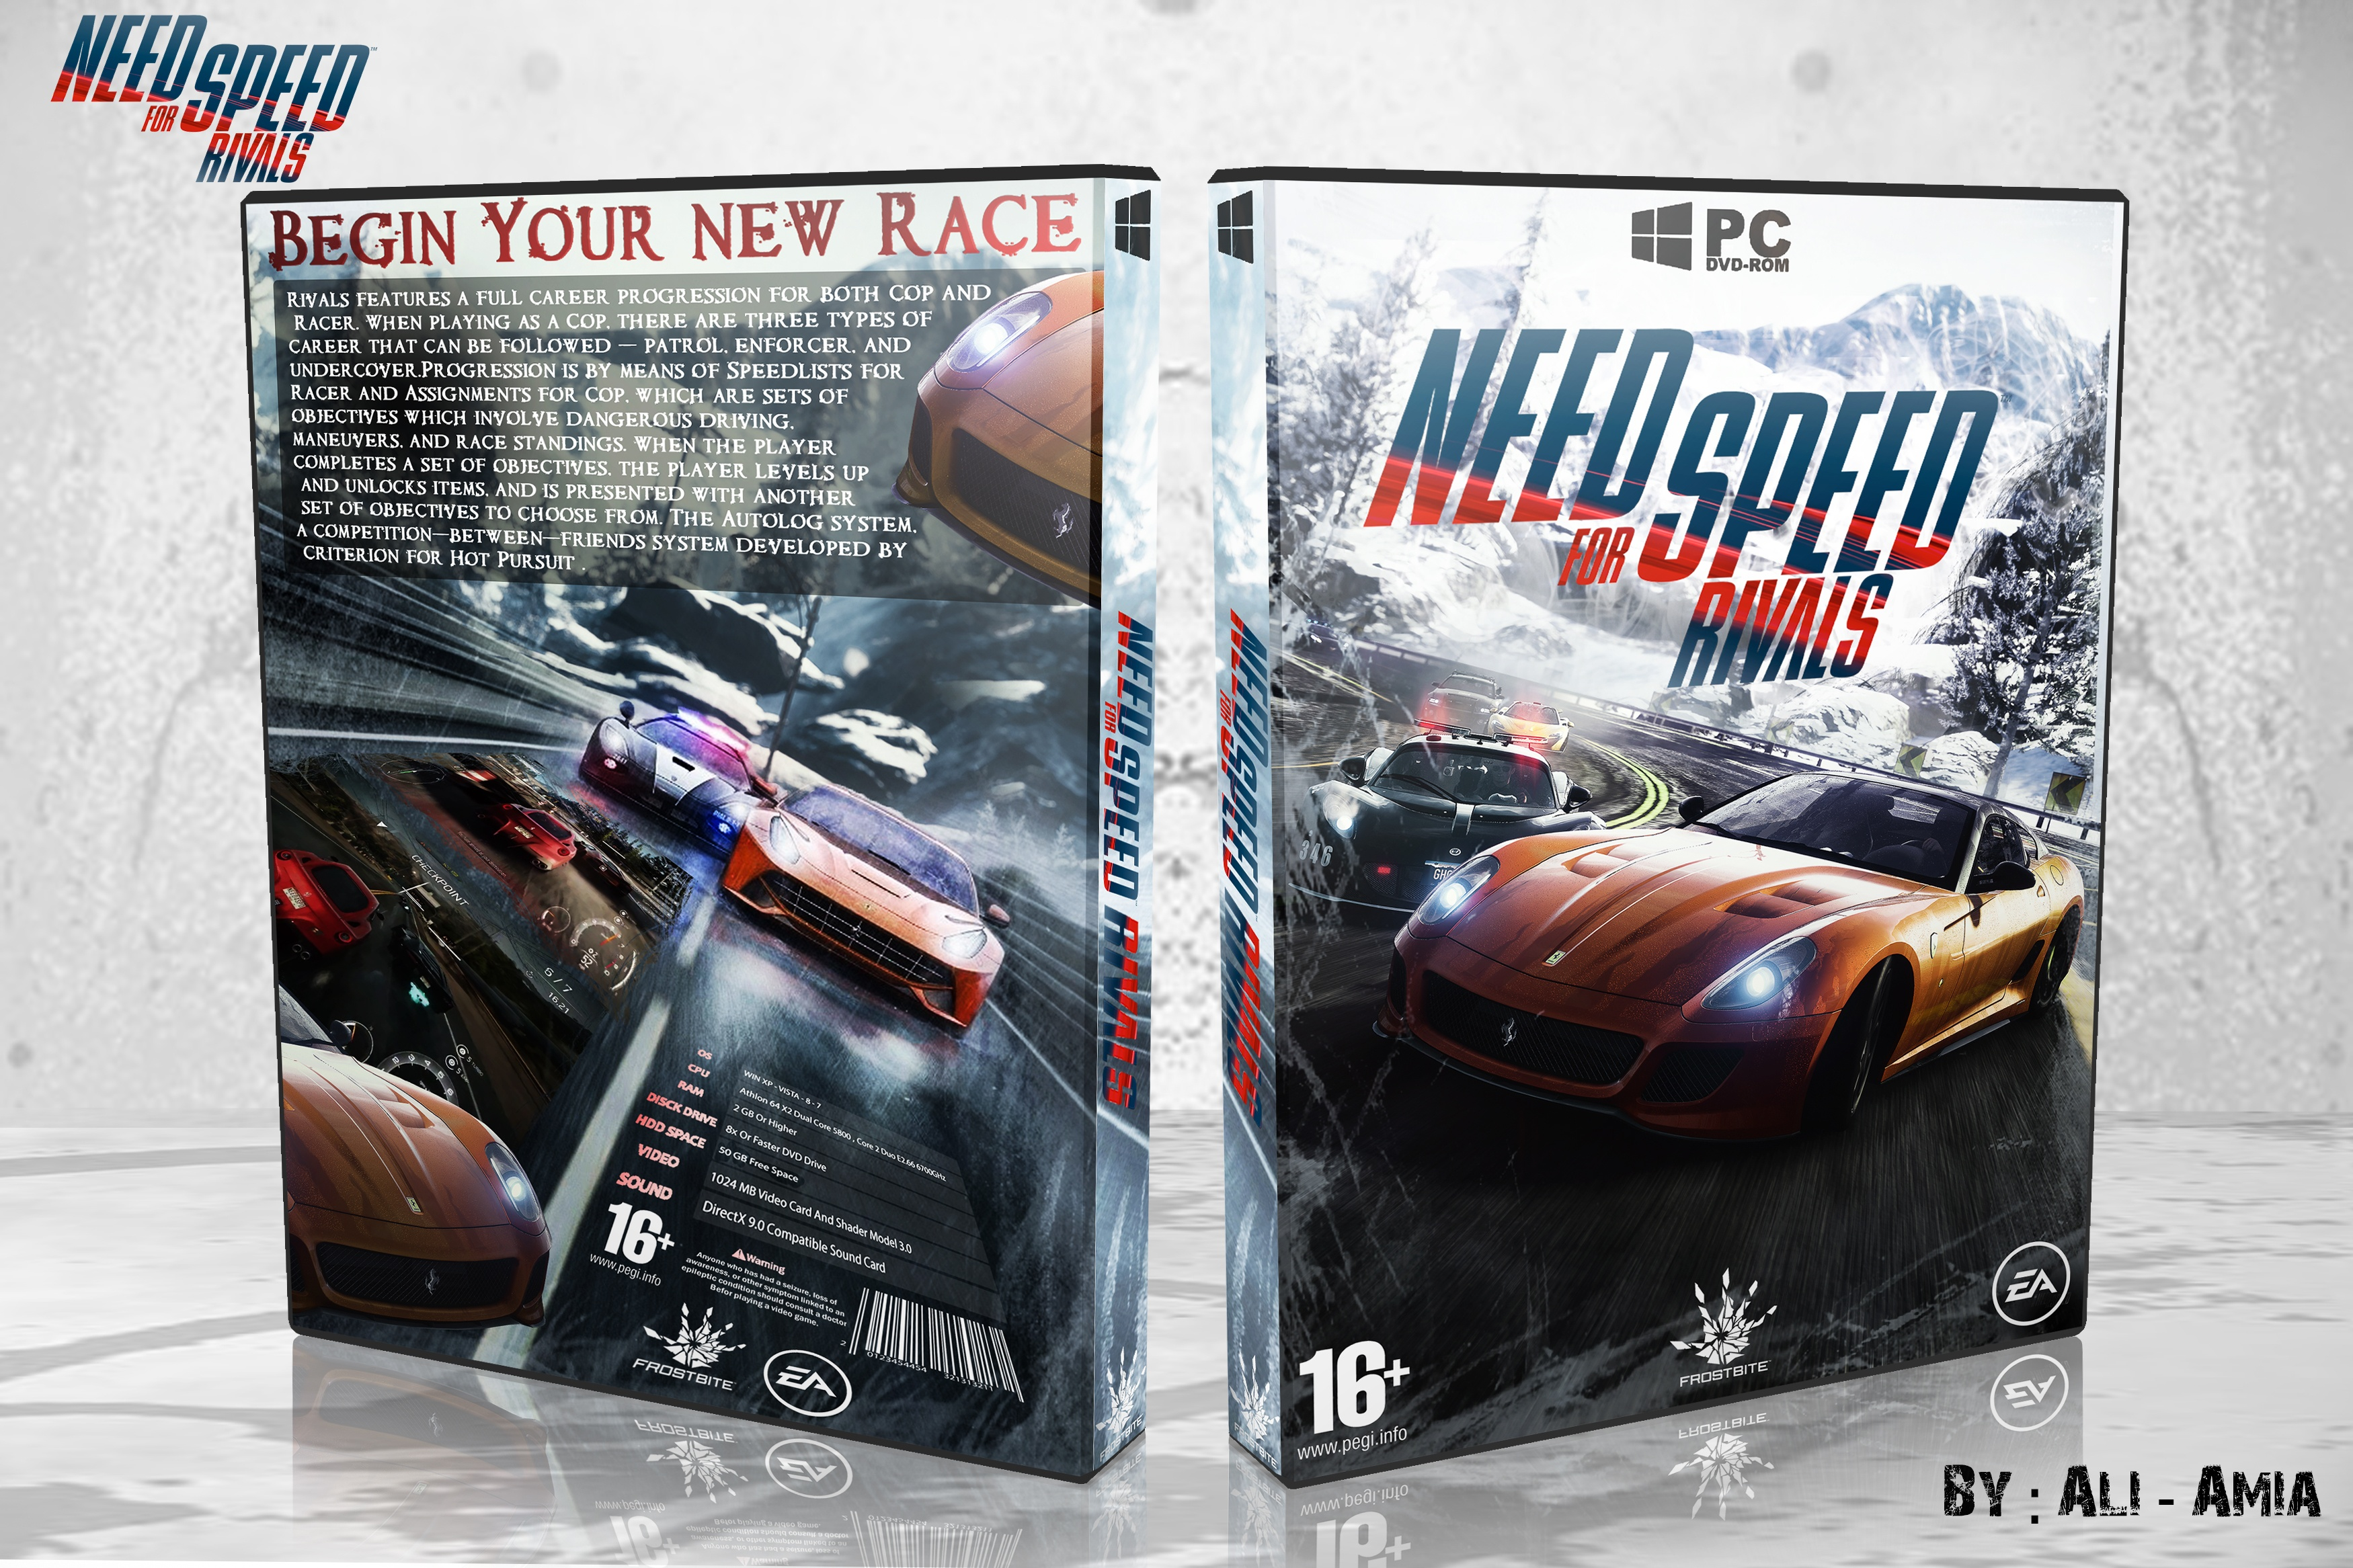 Comments Need For Speed Rivals Box Cover